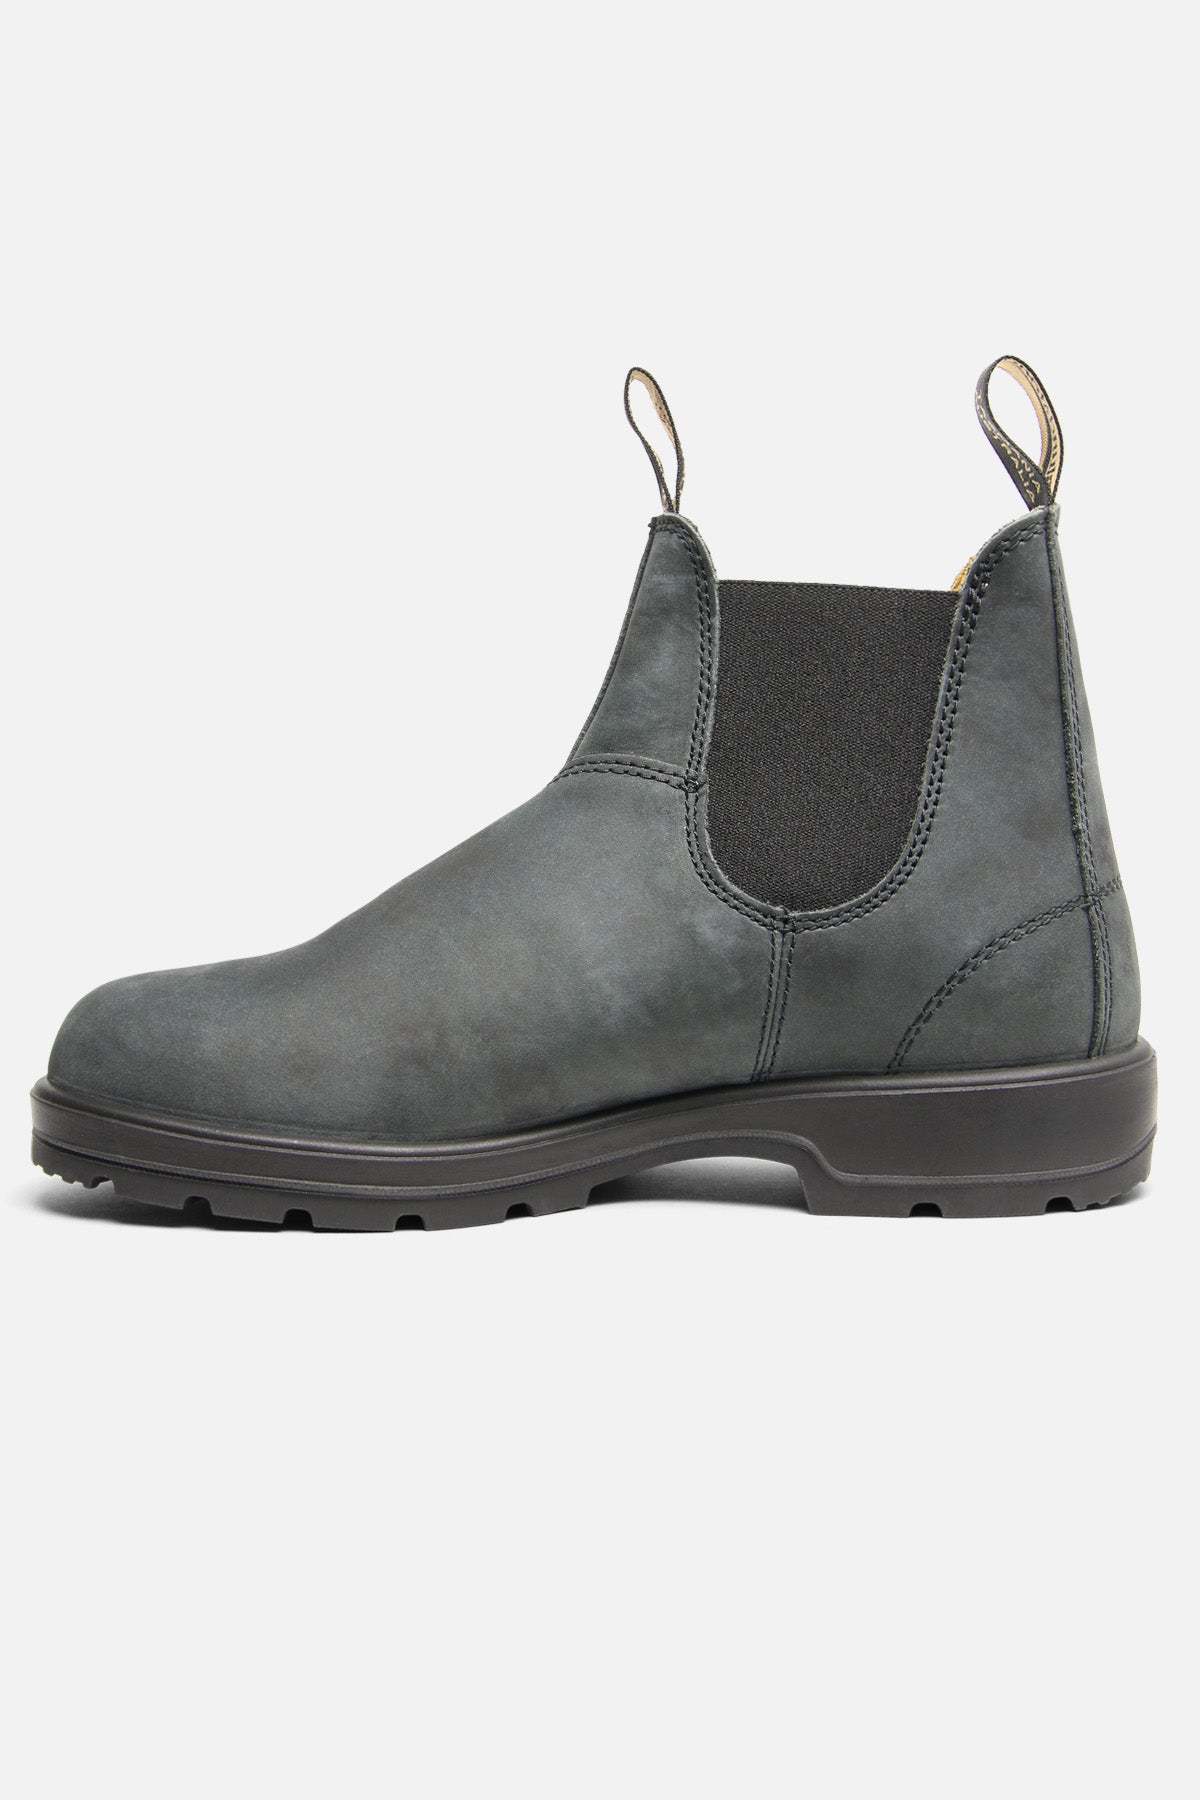 BLUNDSTONE SUPER 550 IN RUSTIC BLACK - Fortune Goods